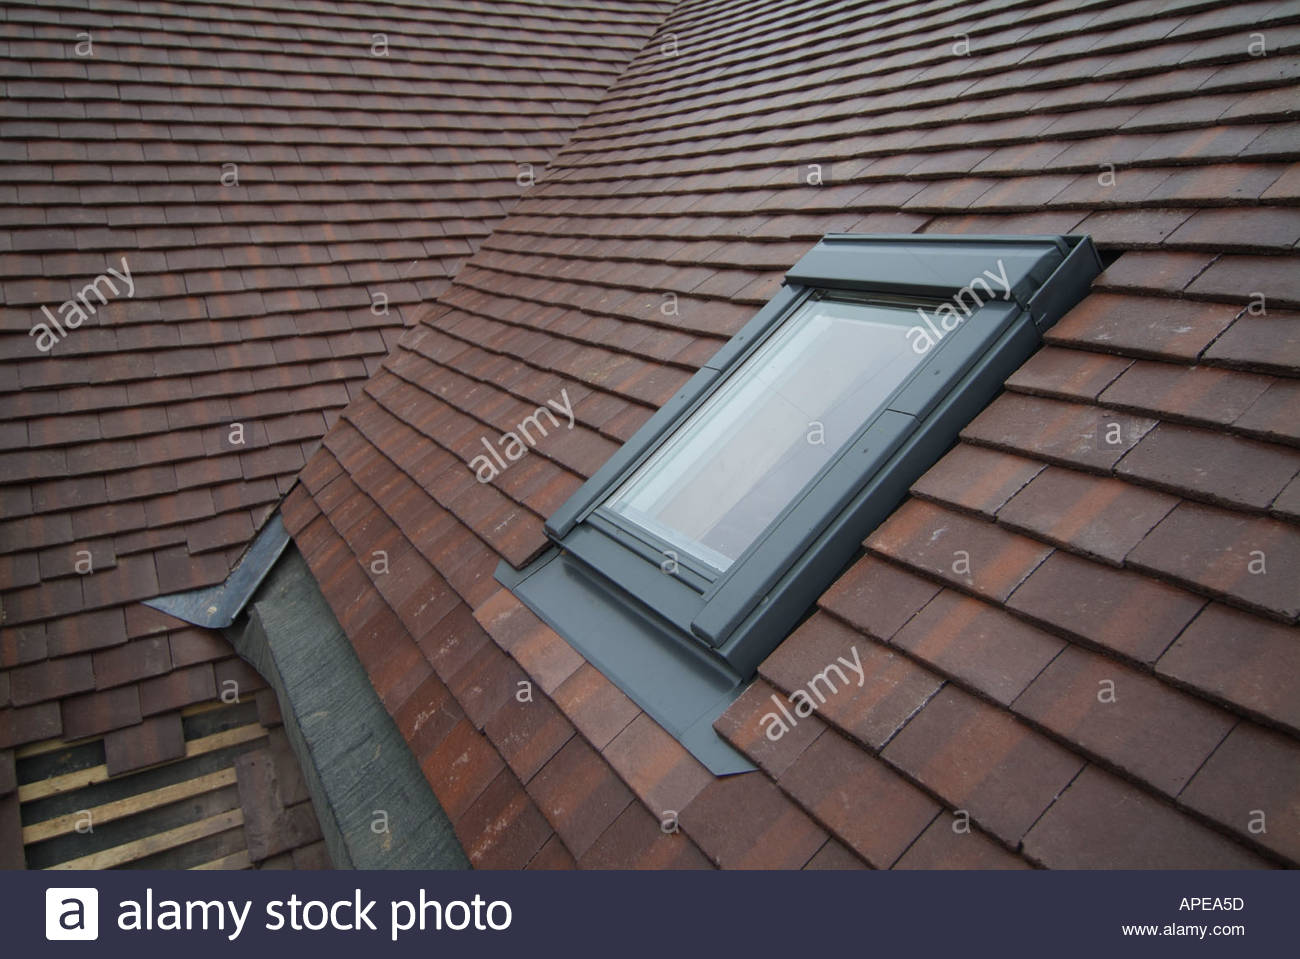 Detached House Construction Roof Covering Of Marley Concrete Plain Tiles  Showing Velux Roof Light Essex England